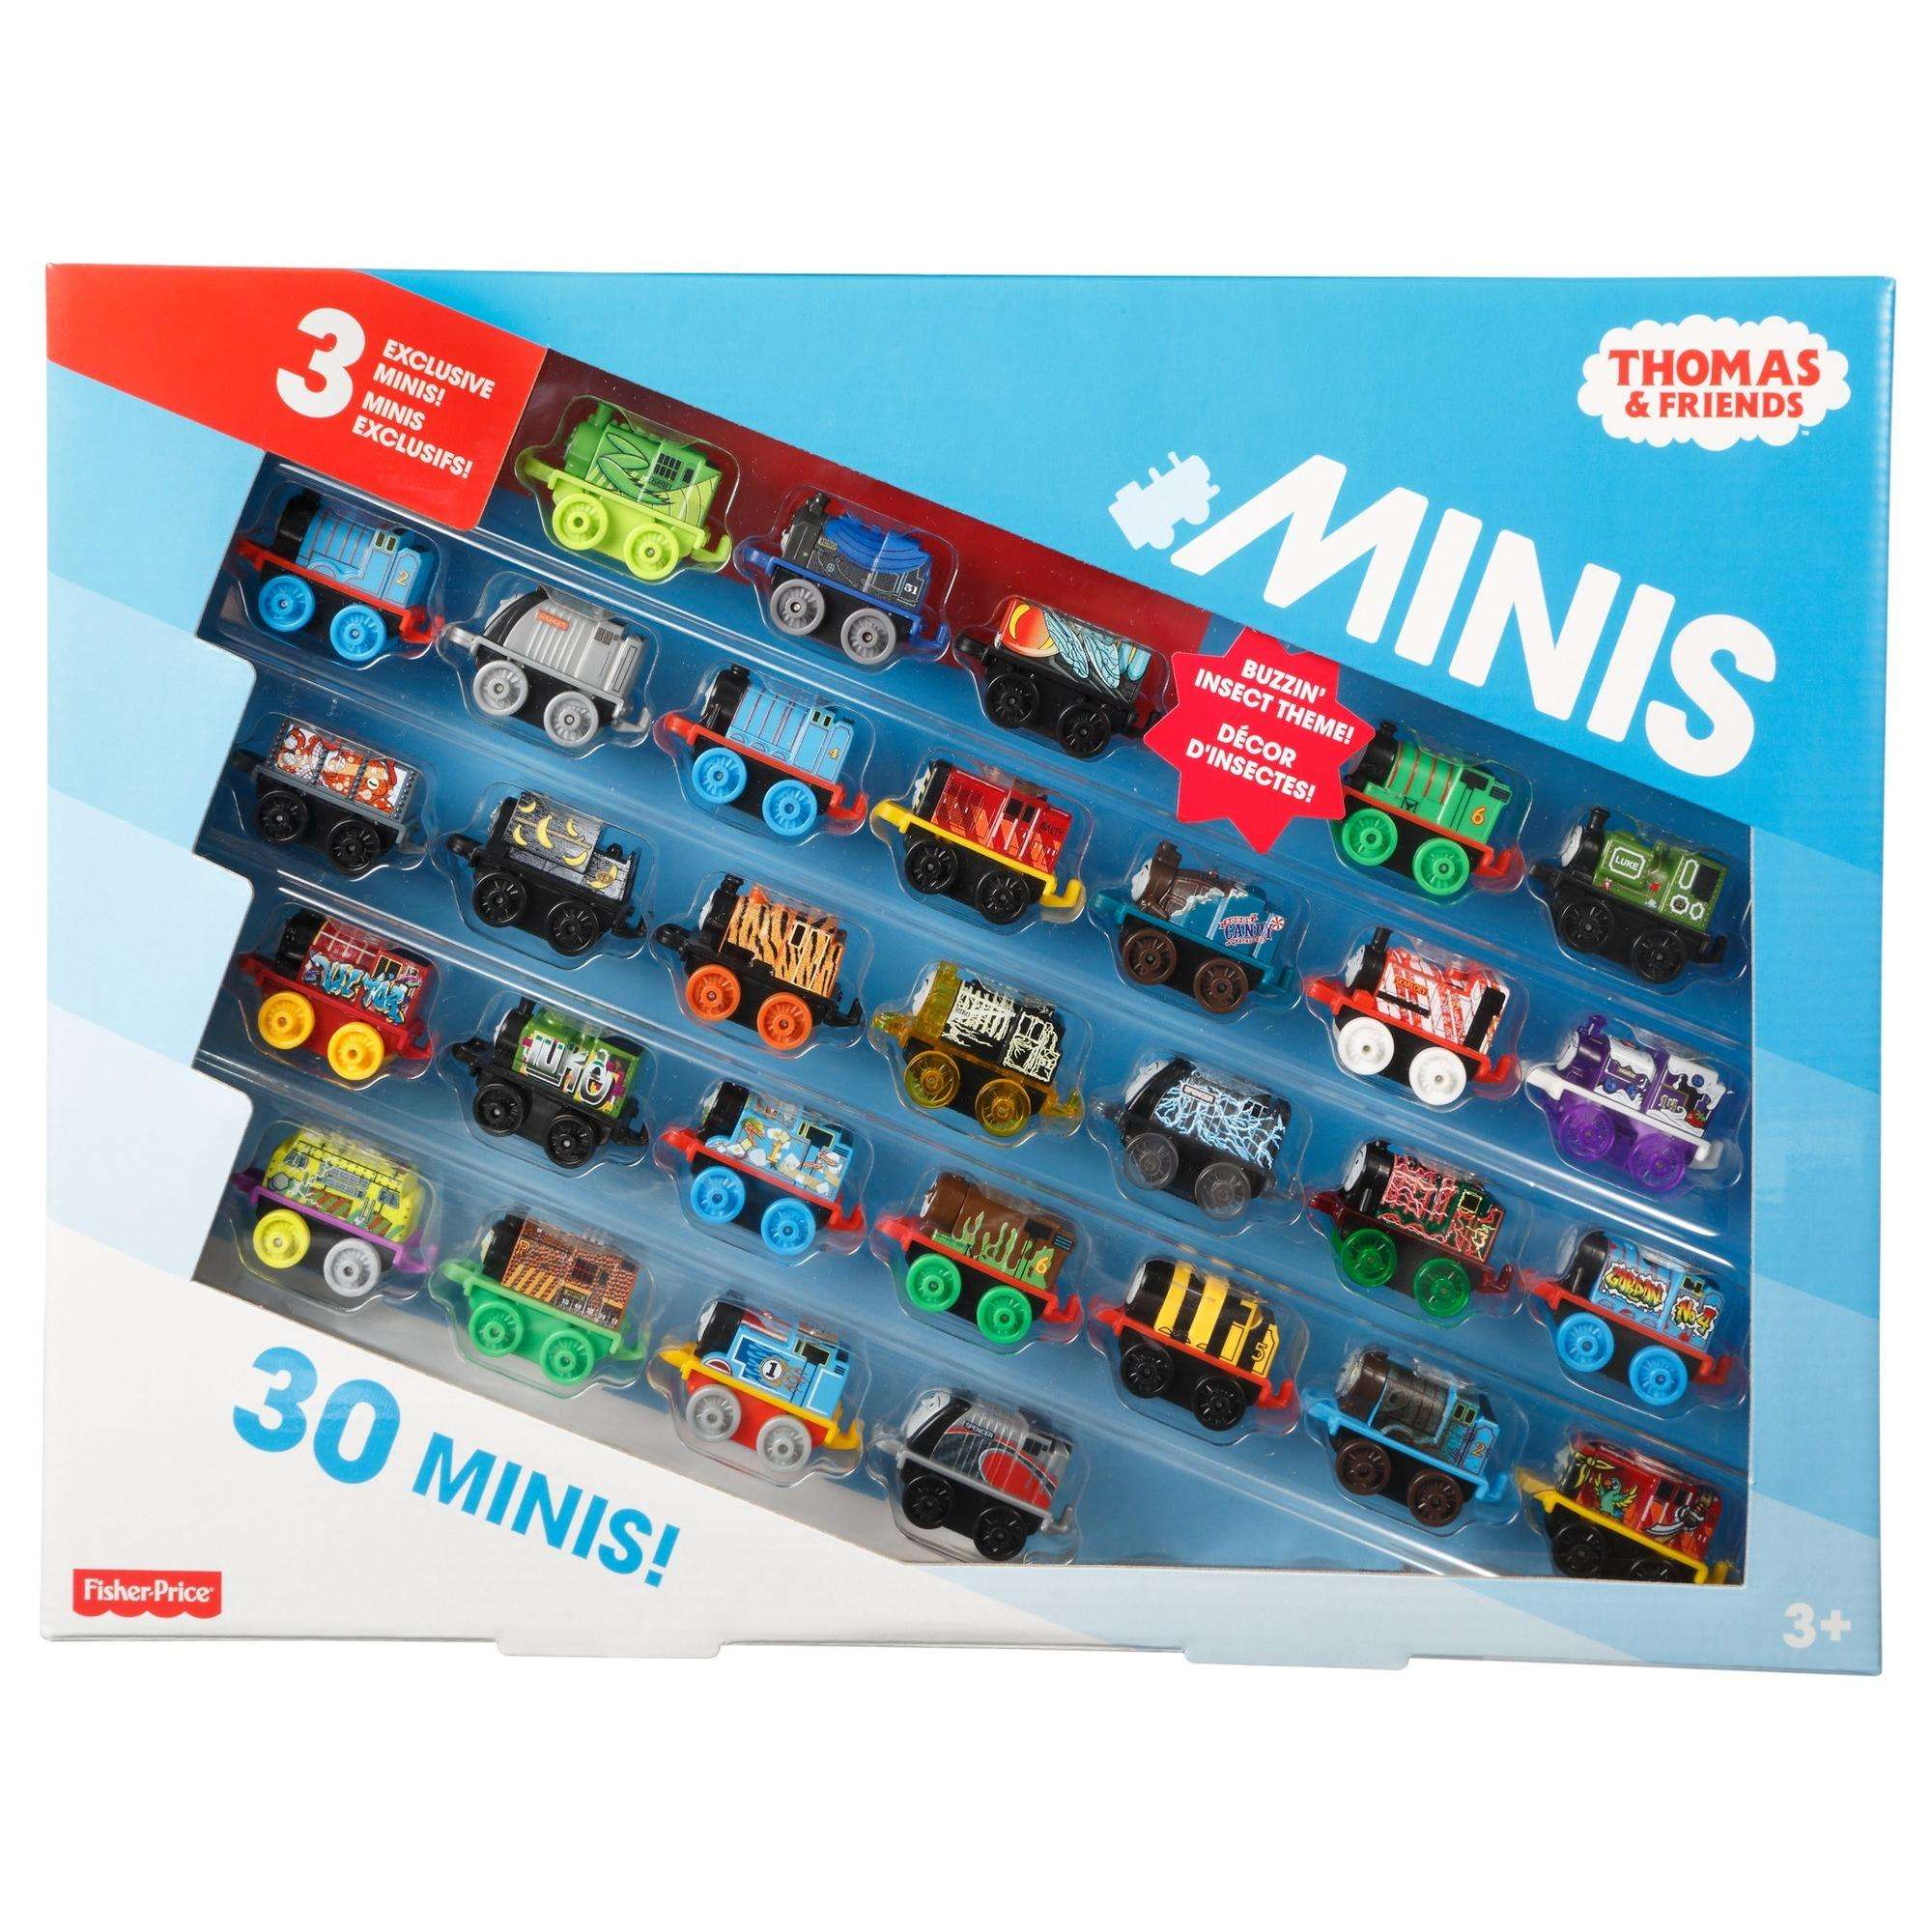 Thomas & Friends MINIS, 30 Pack by Mattel